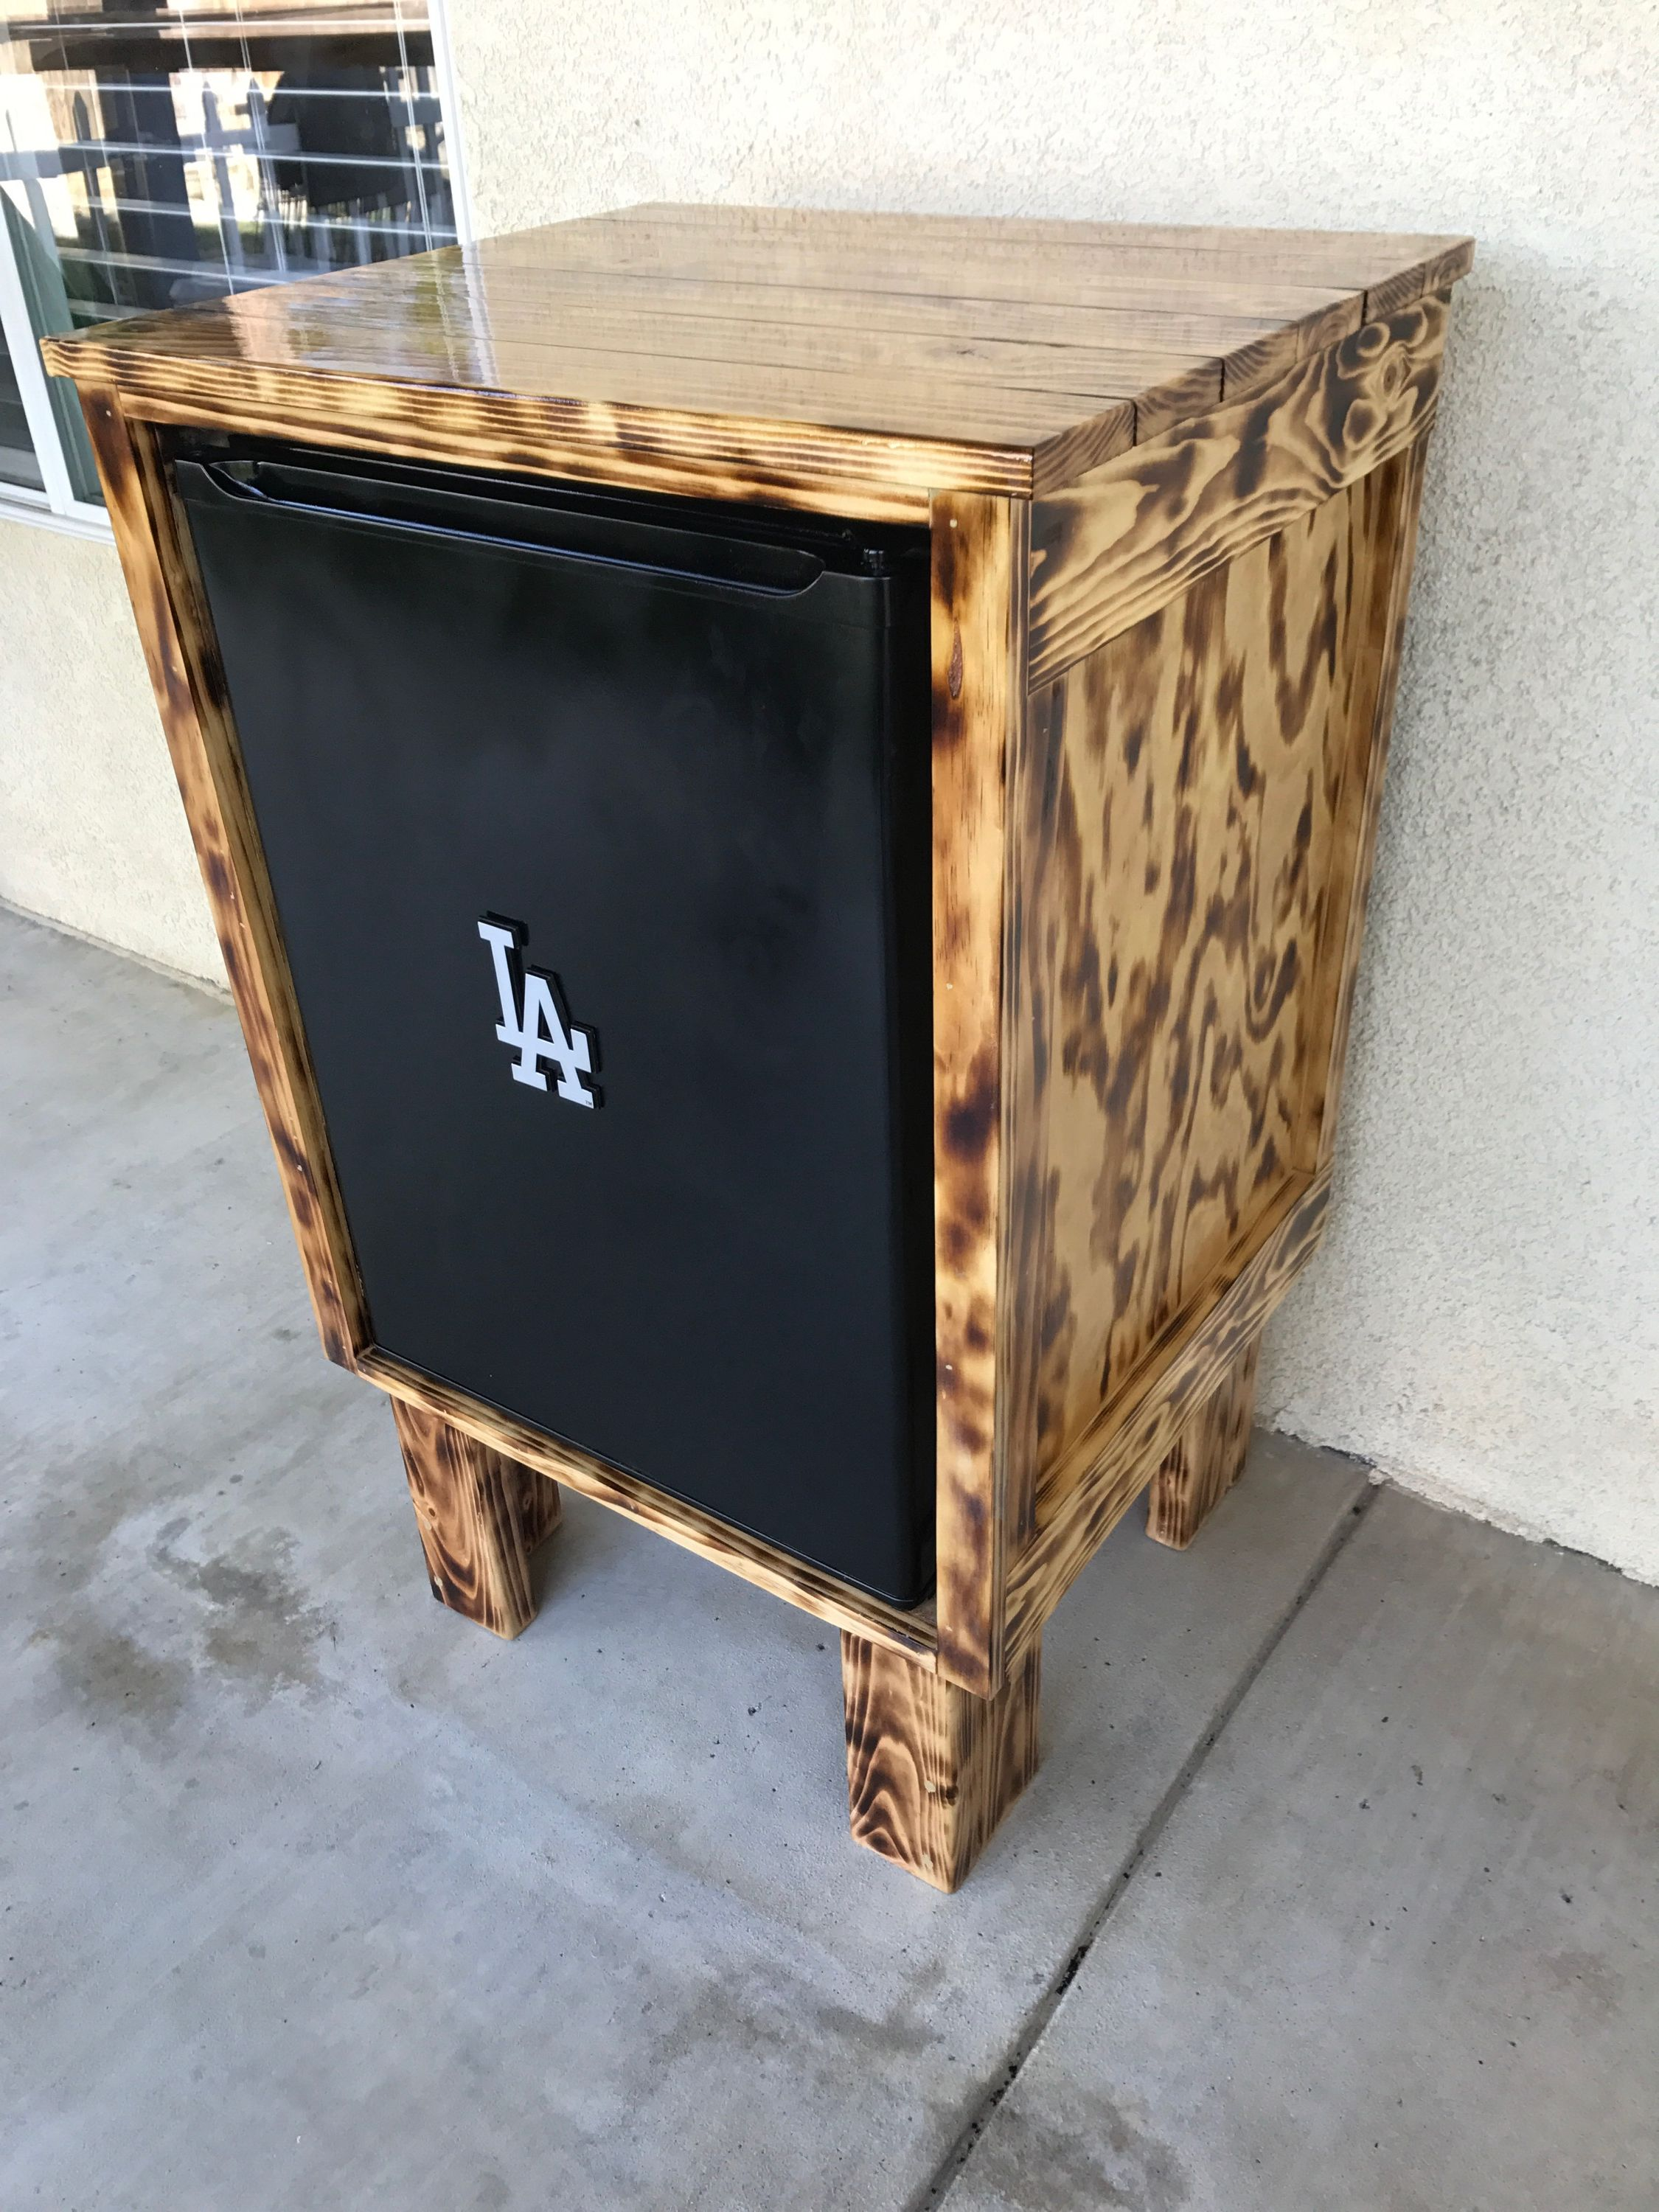 Glossy Burnt Wood Mini Fridge Cabinet In 2019